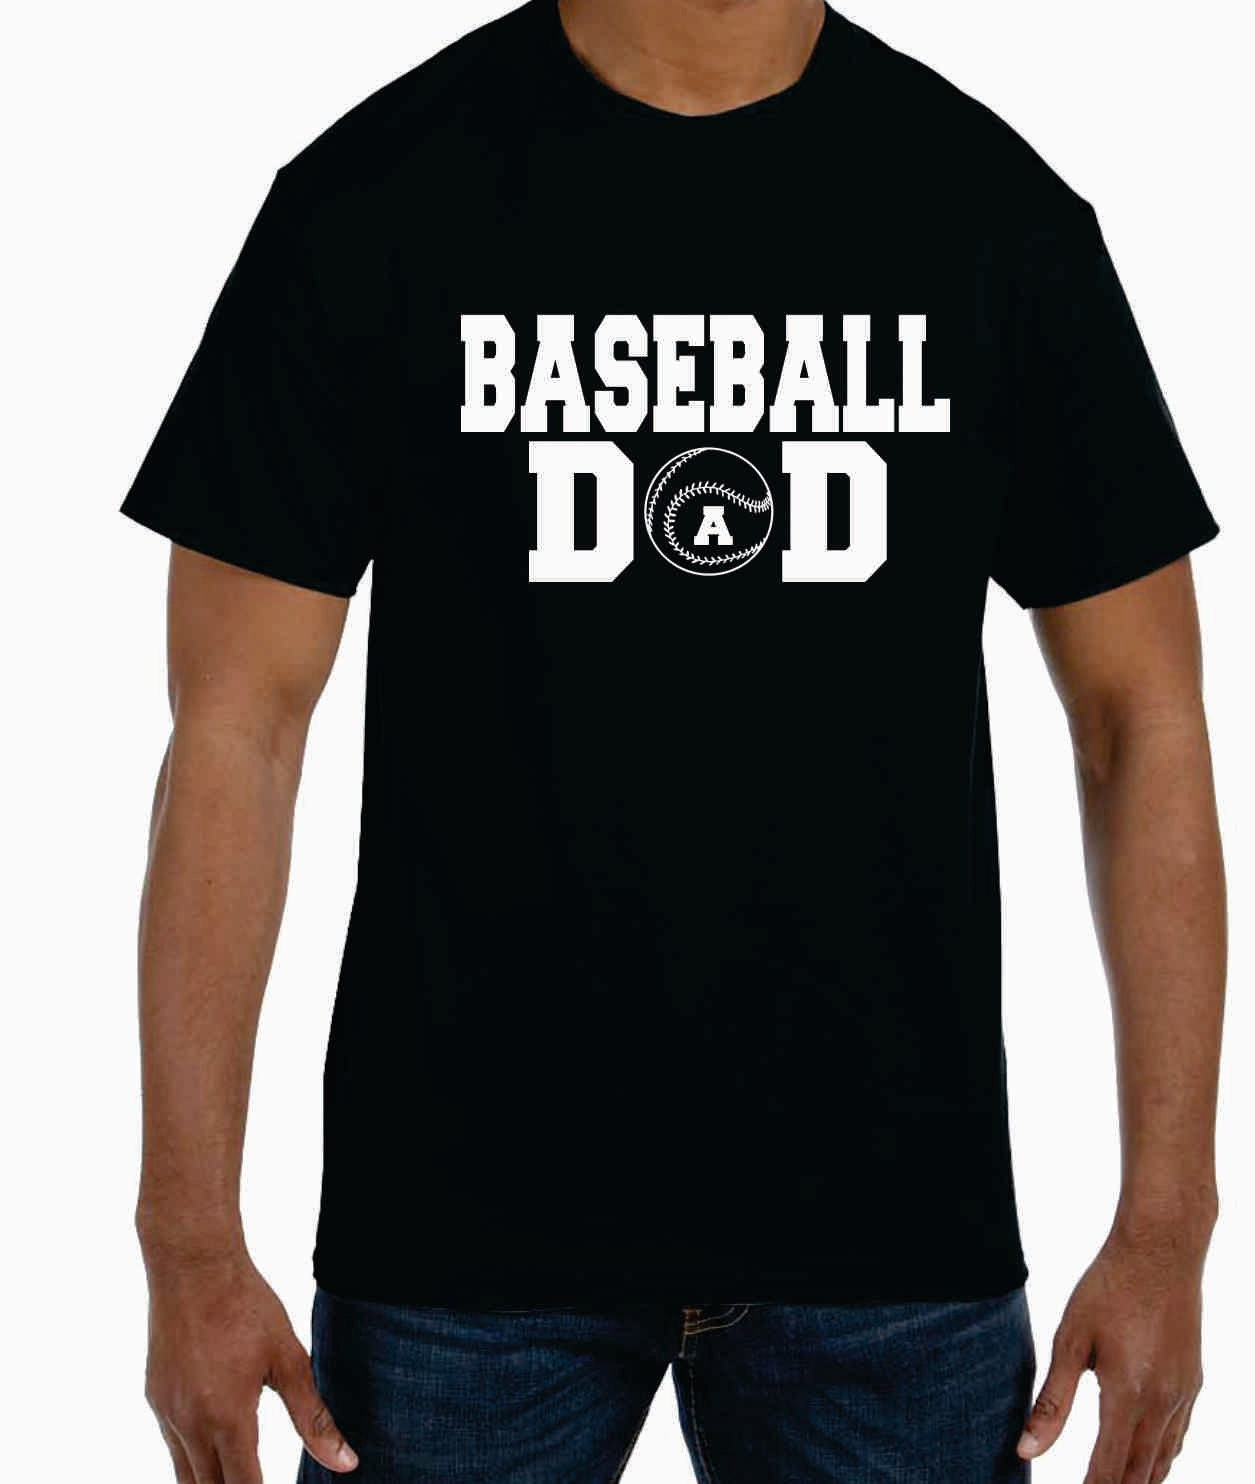 Baseball Dad Shirt Team Shirts Baseball Shirt Ideas Gift Etsy